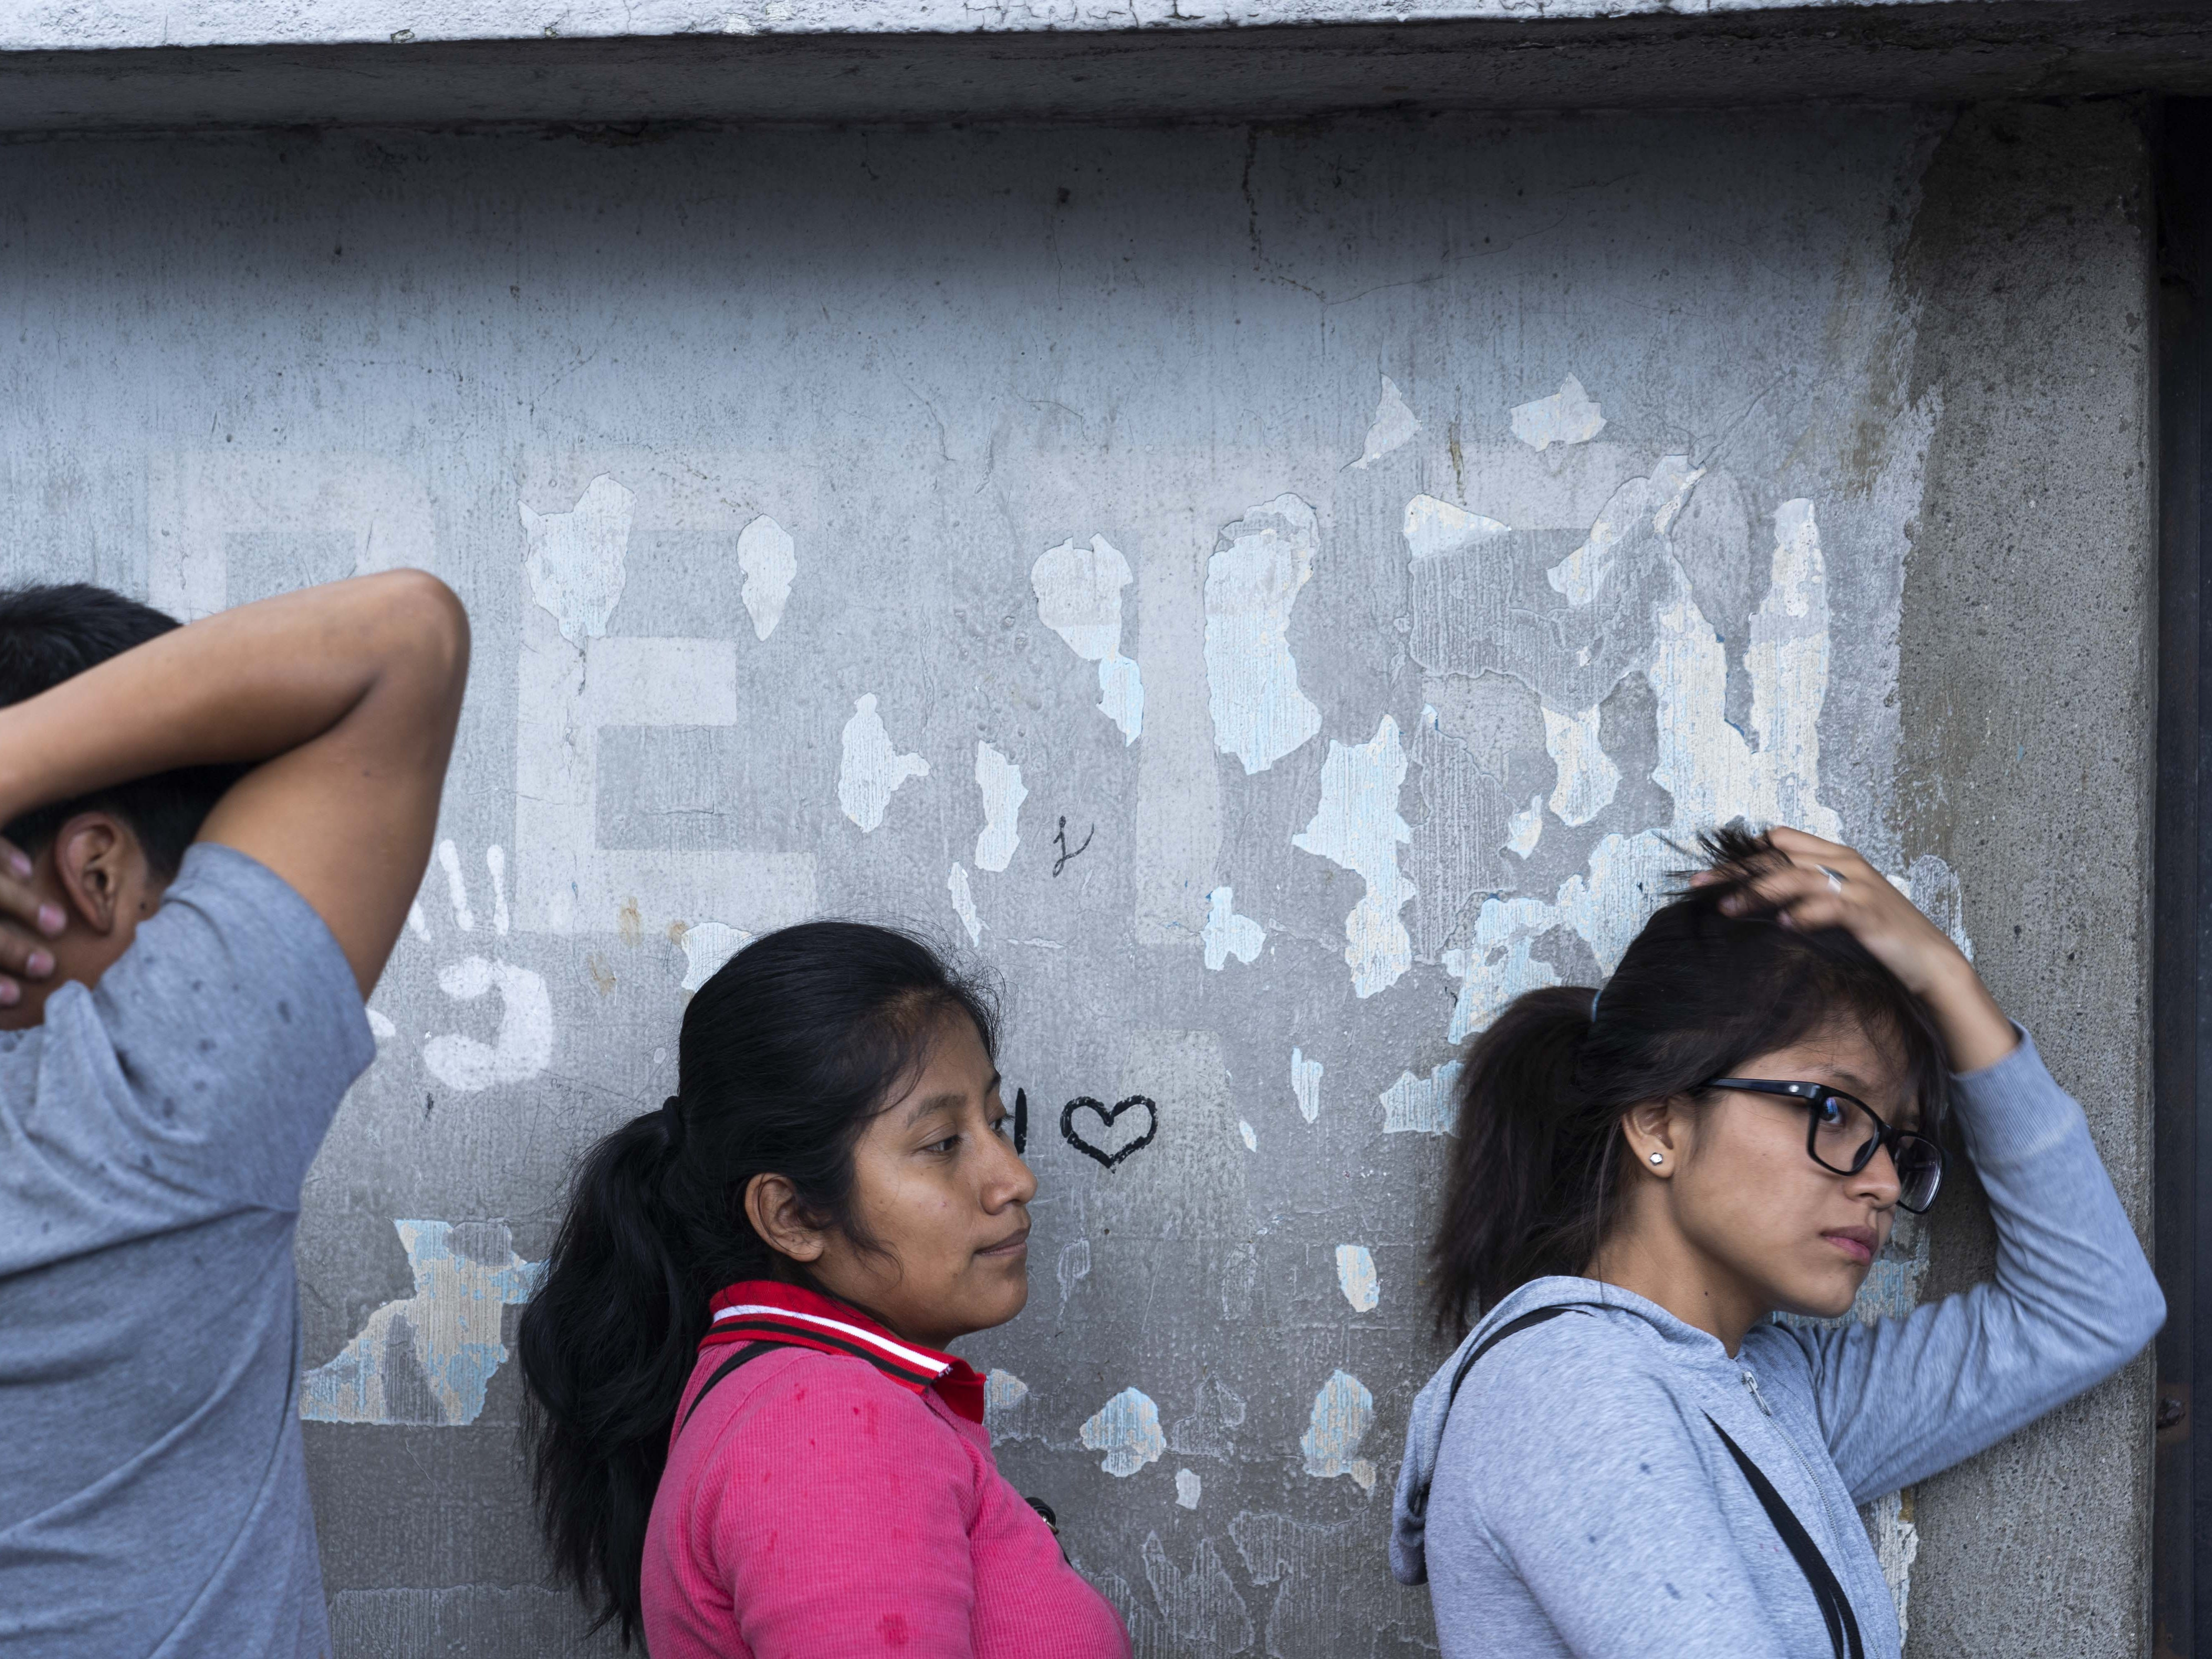 Relatives and friends wait outside a military base adjacent to the international airport in Guatemala City for deportees arriving from the United States.